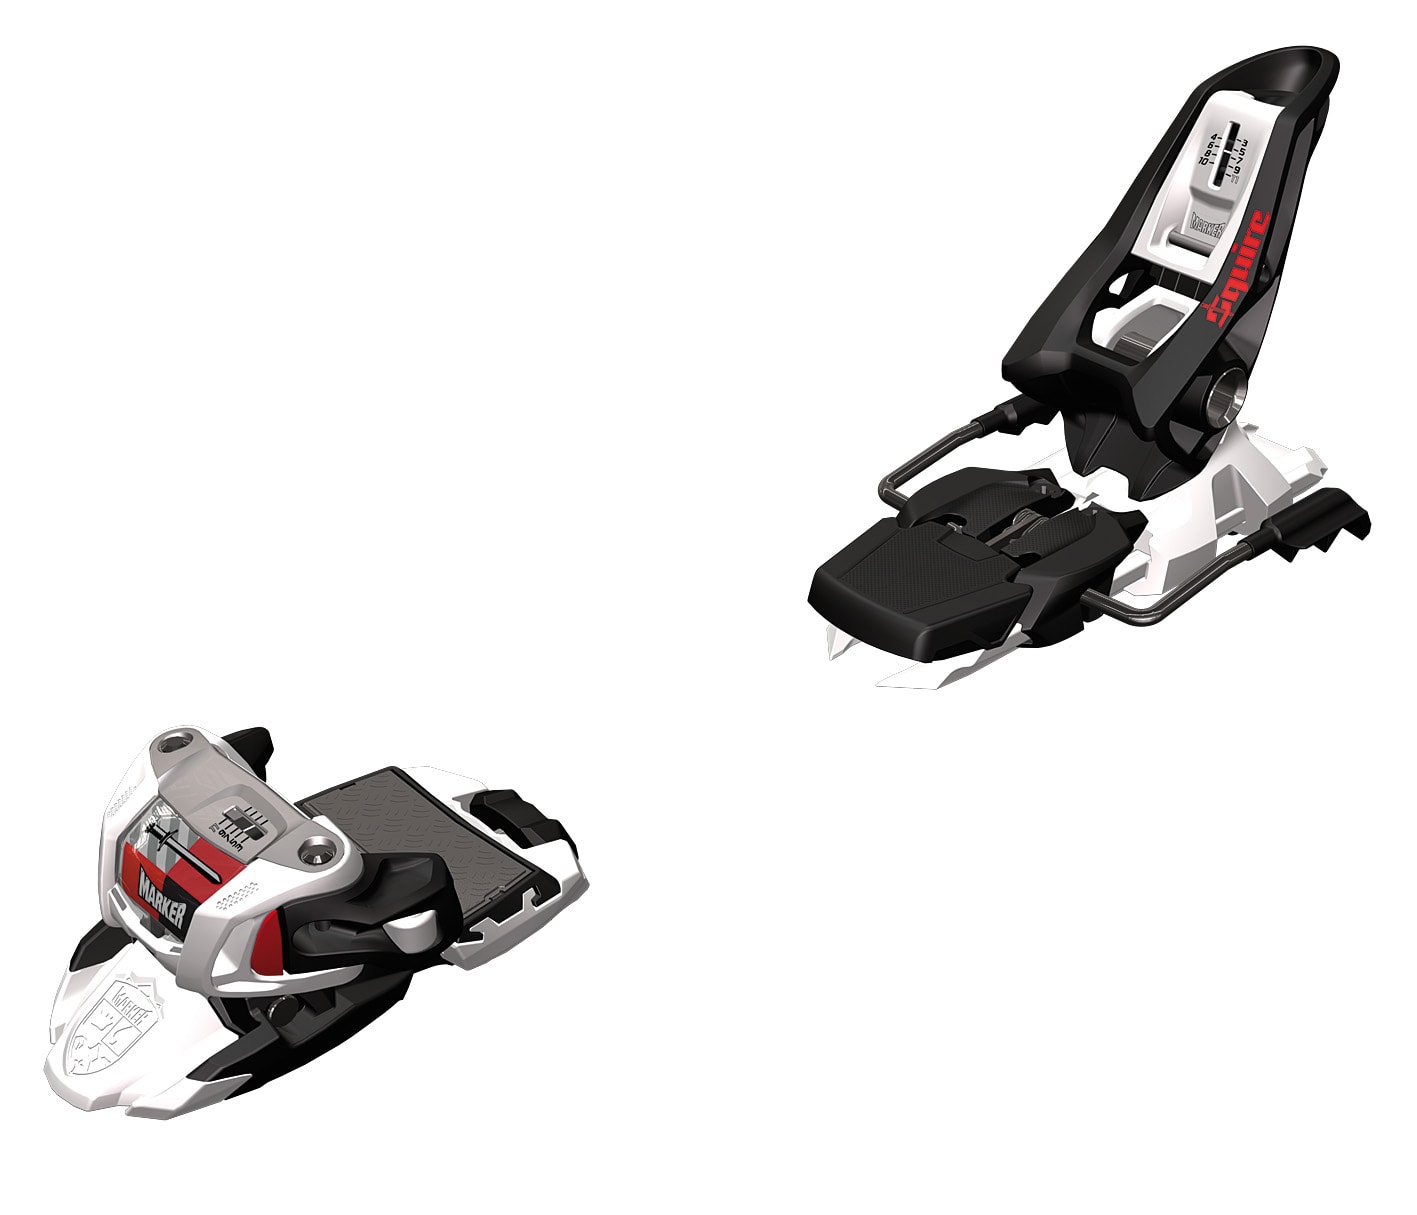 On Sale Marker Squire Ski Bindings Up To 55% Off